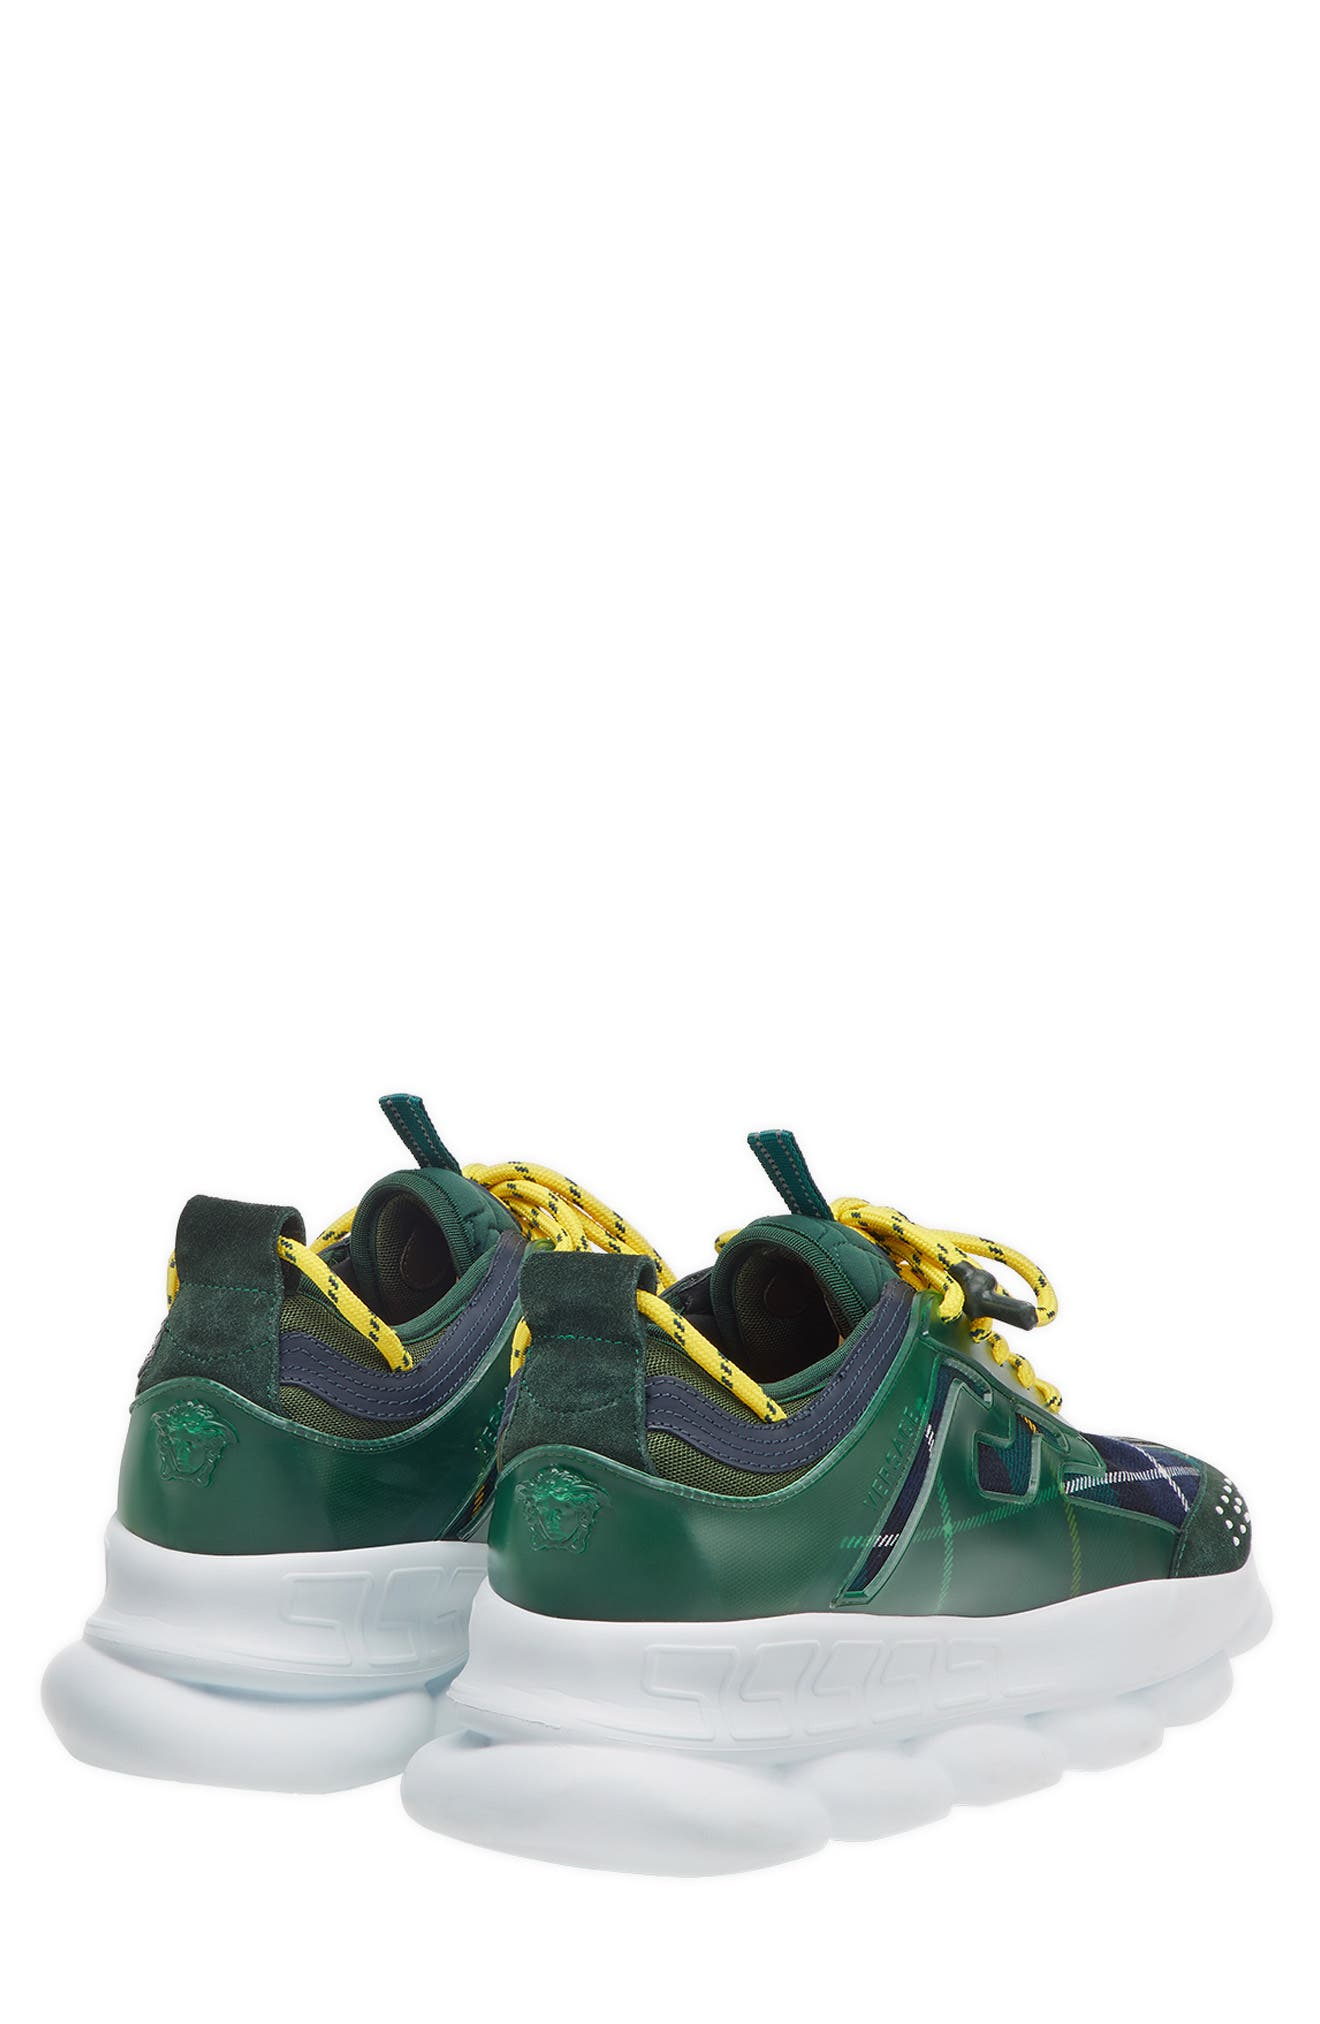 Chain Reaction Sneaker,                             Alternate thumbnail 2, color,                             VERDE/ GIALLO